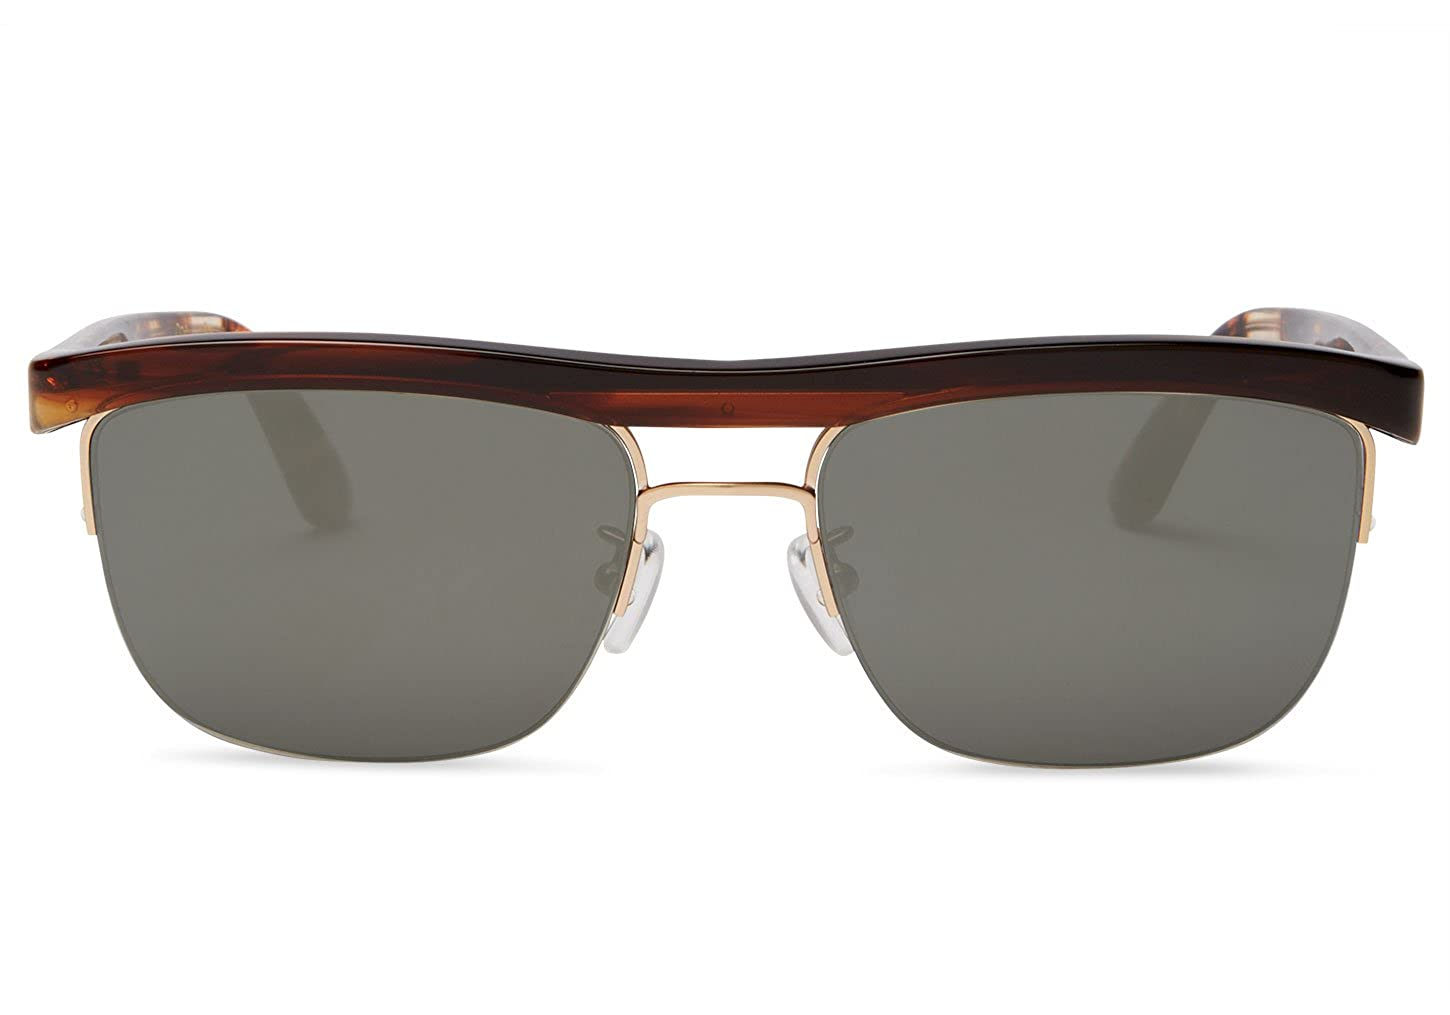 464a6a358639 Amazon.com  TOMS Sunglasses LOCKE (Amber Ale   Copper Mirror